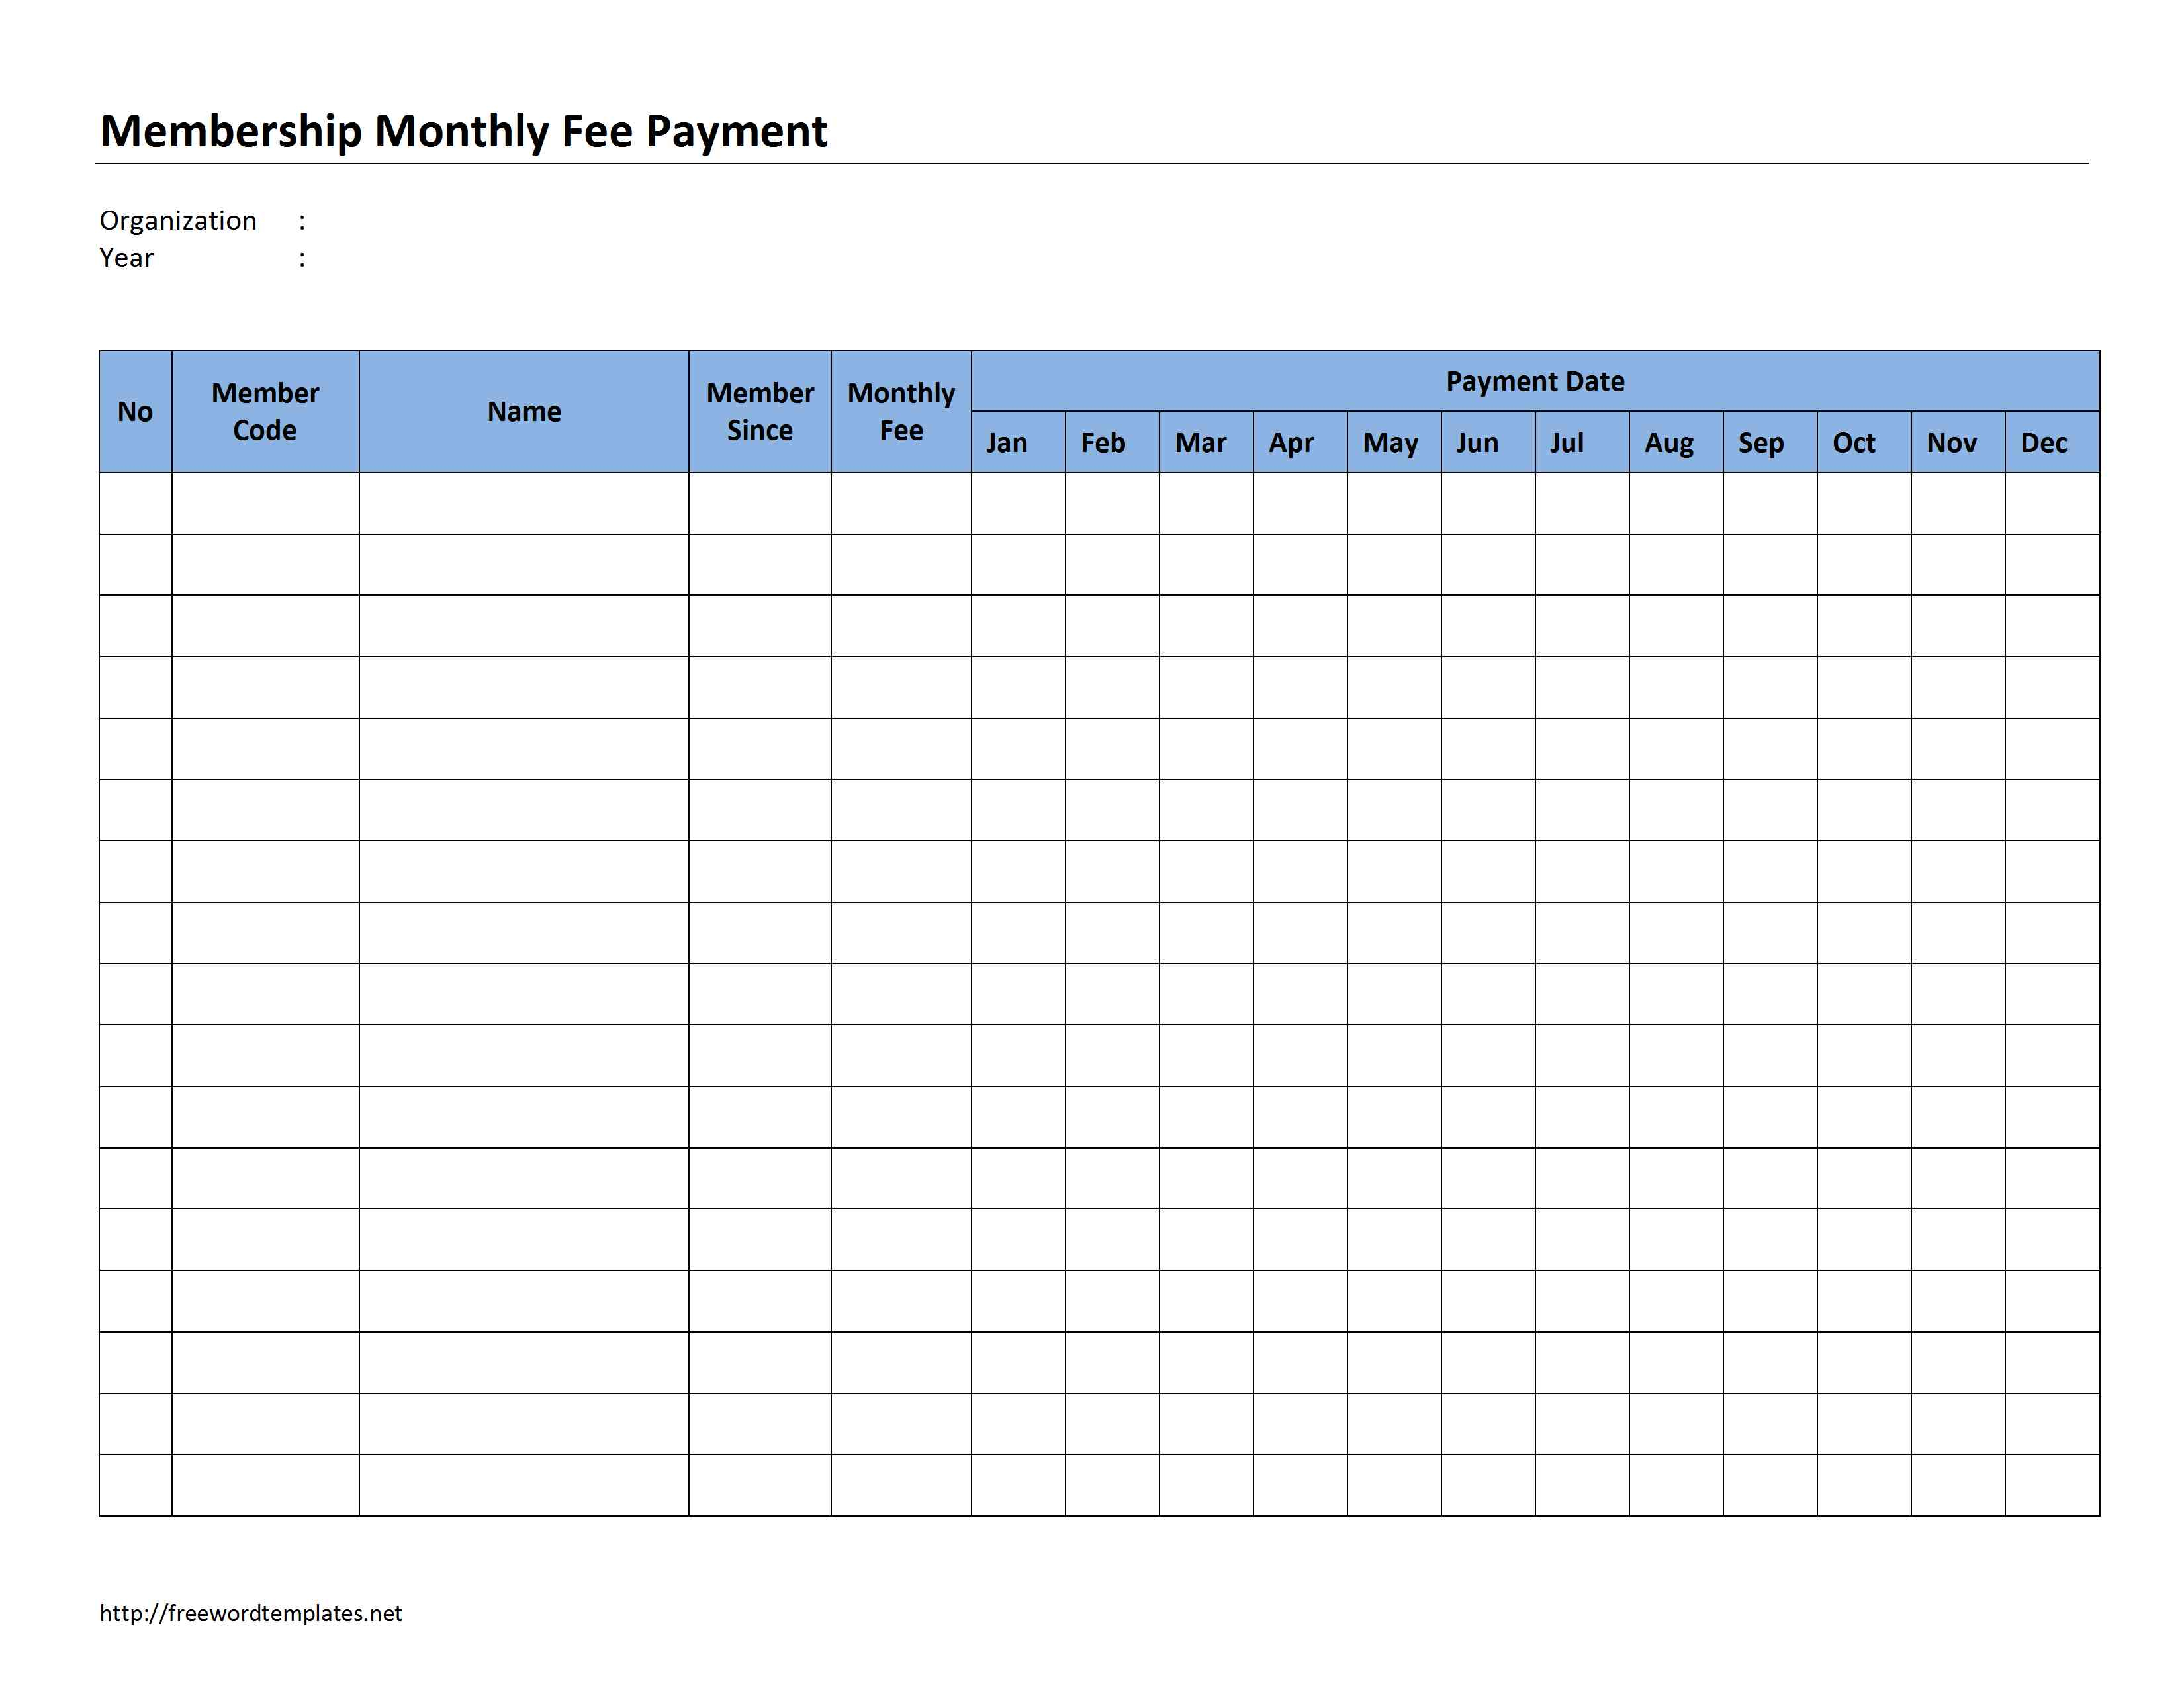 Membership Dues Spreadsheet With Membership Monthly Fee Payment